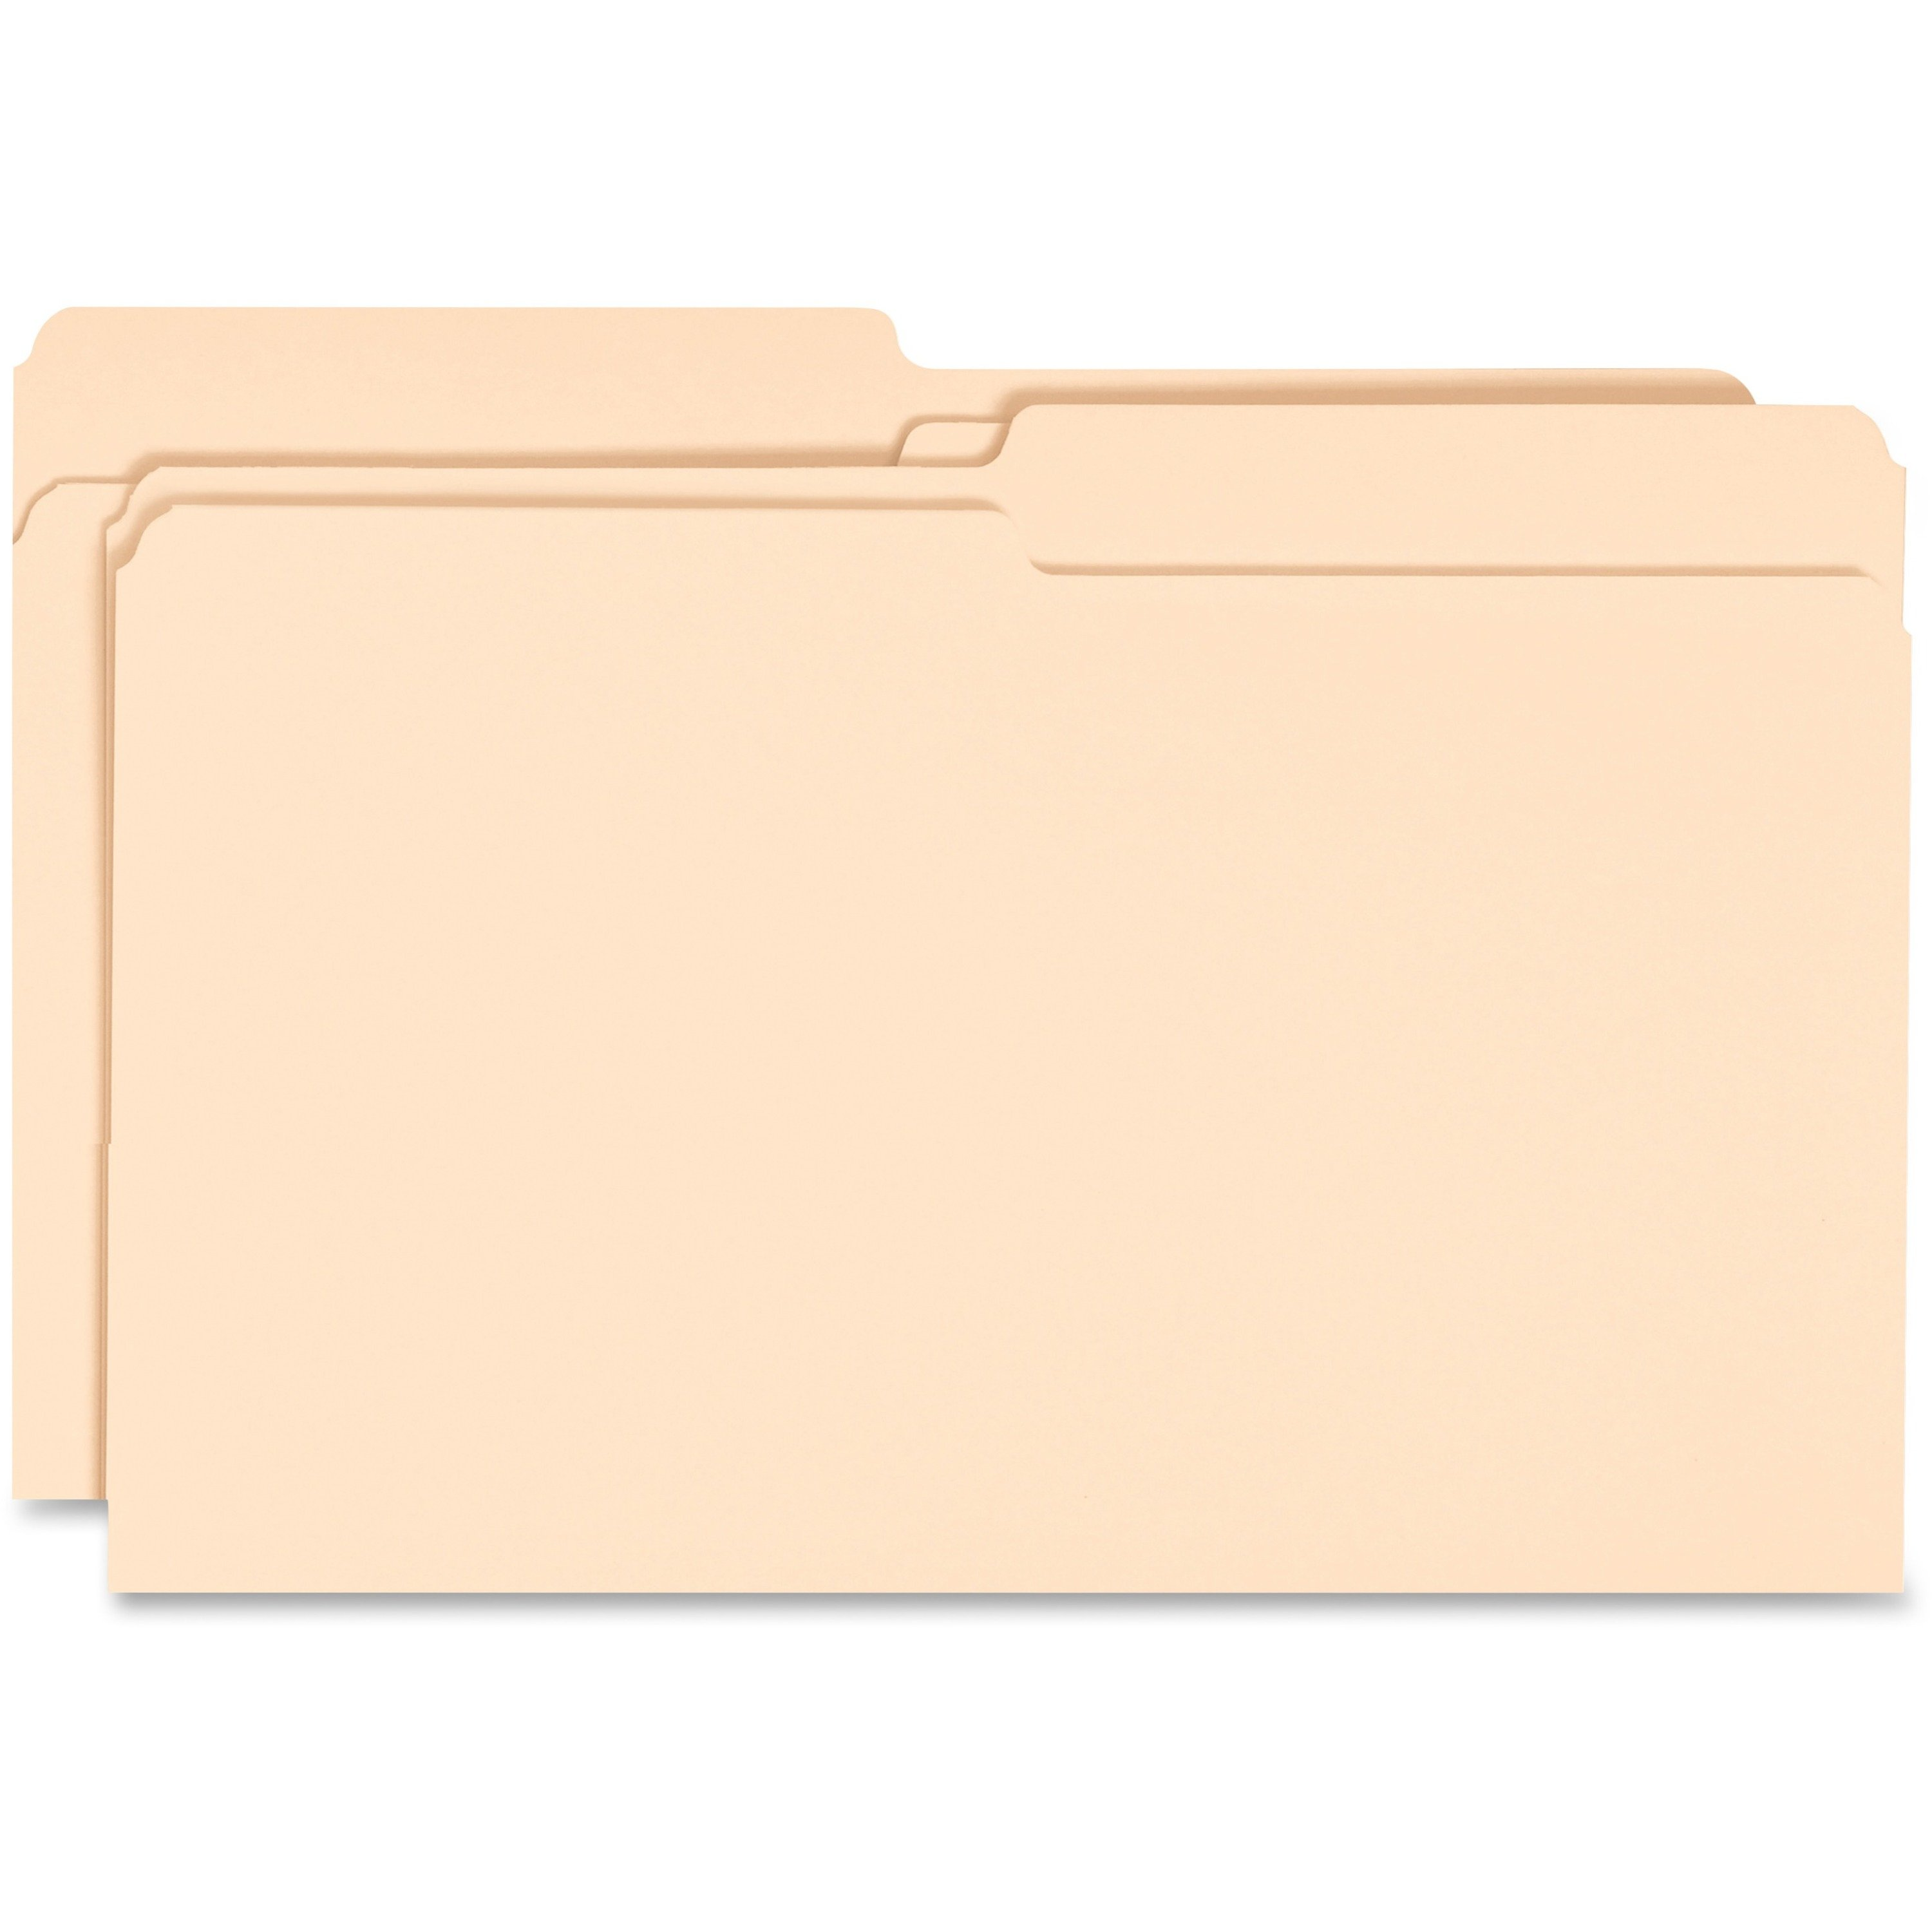 Business Source 1/2 Cut Legal Size Recycled Manila File Folders - 100/Box